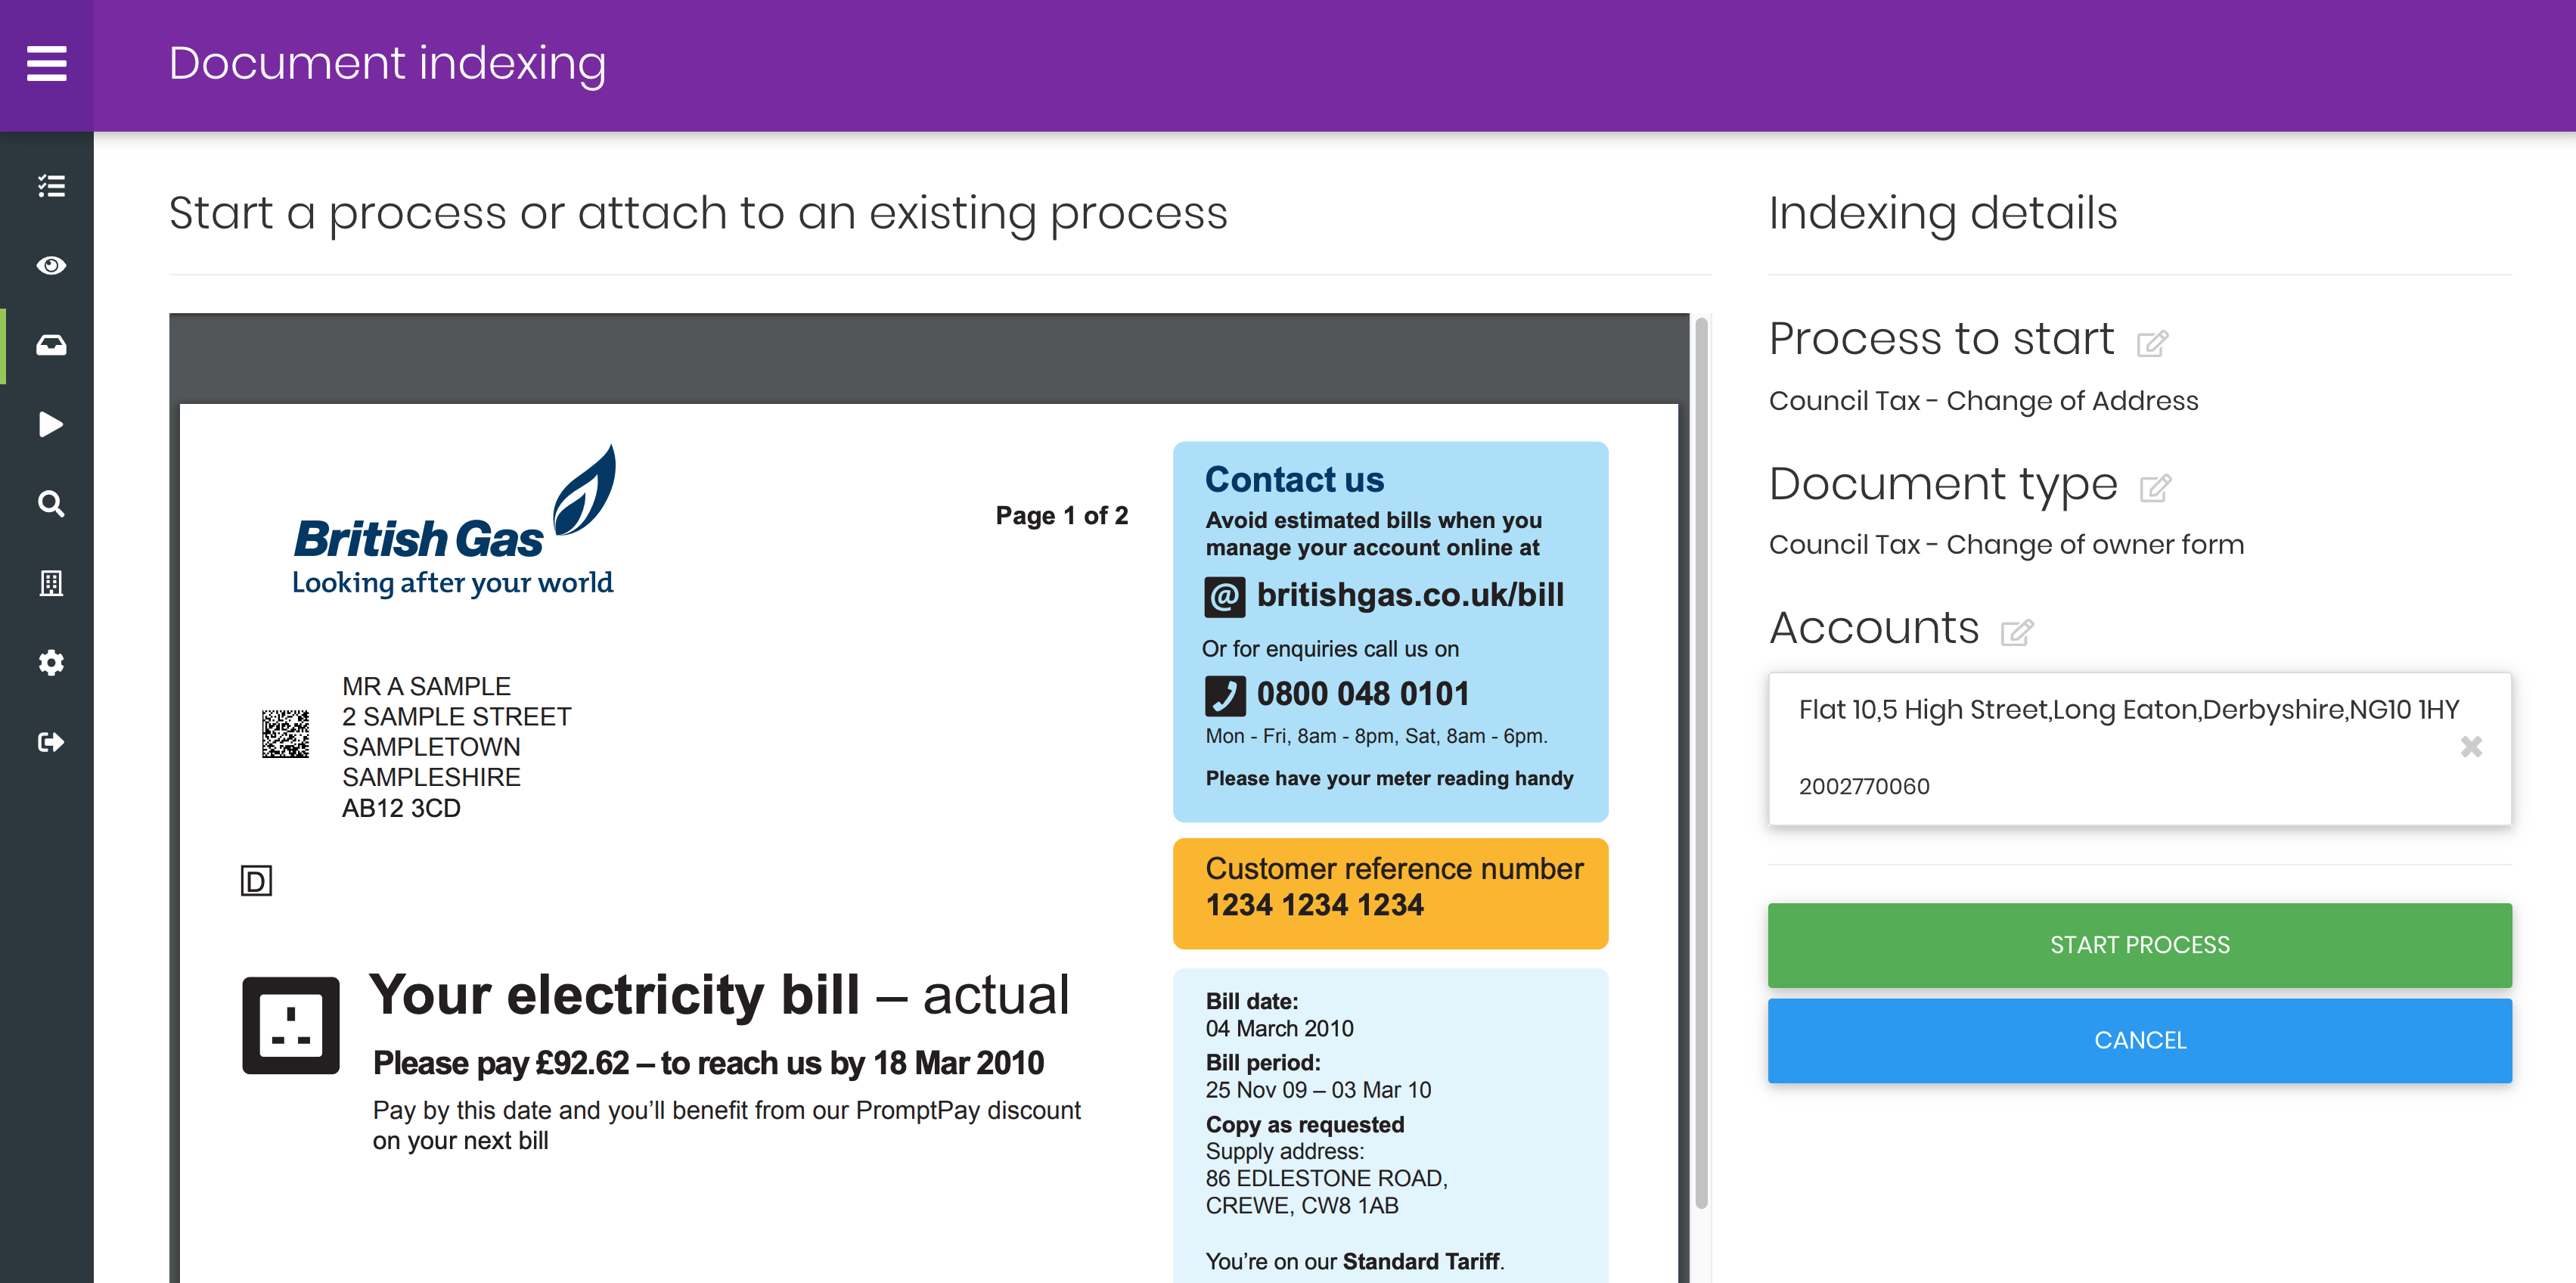 IEG4 Open process showing document indexing